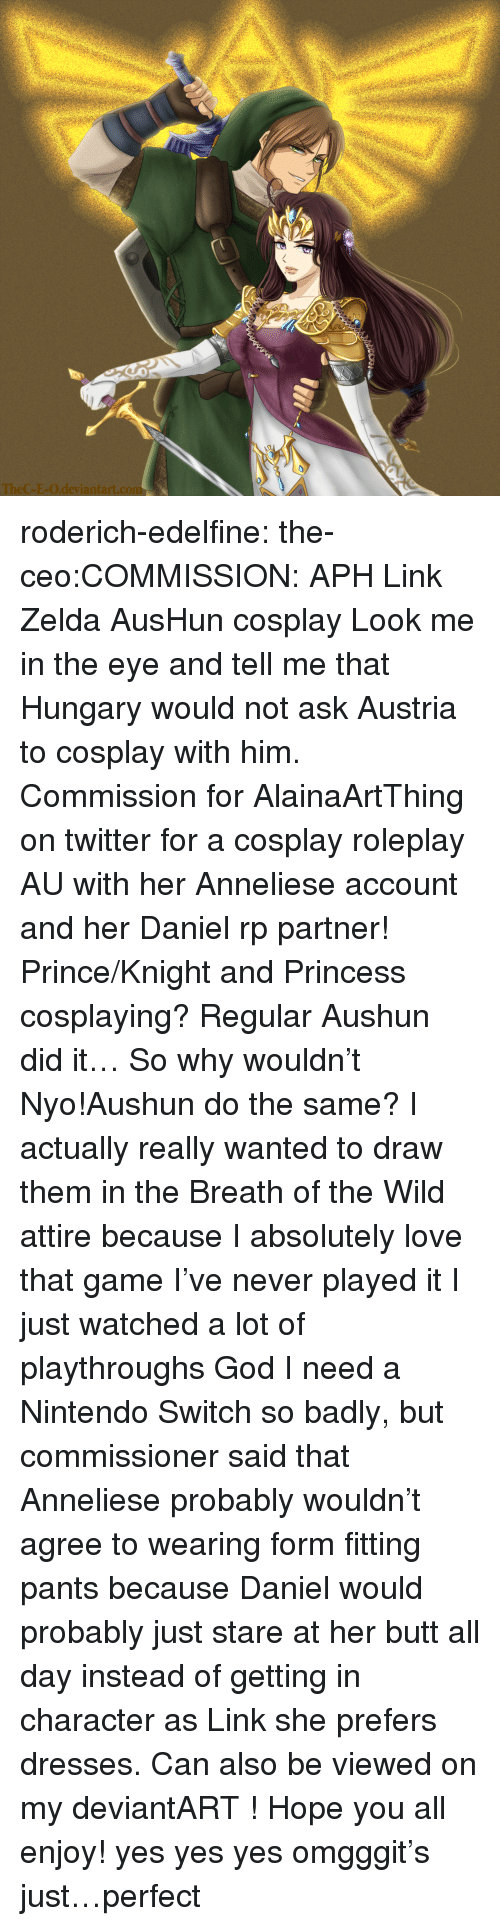 Ask zelda for anal sex found